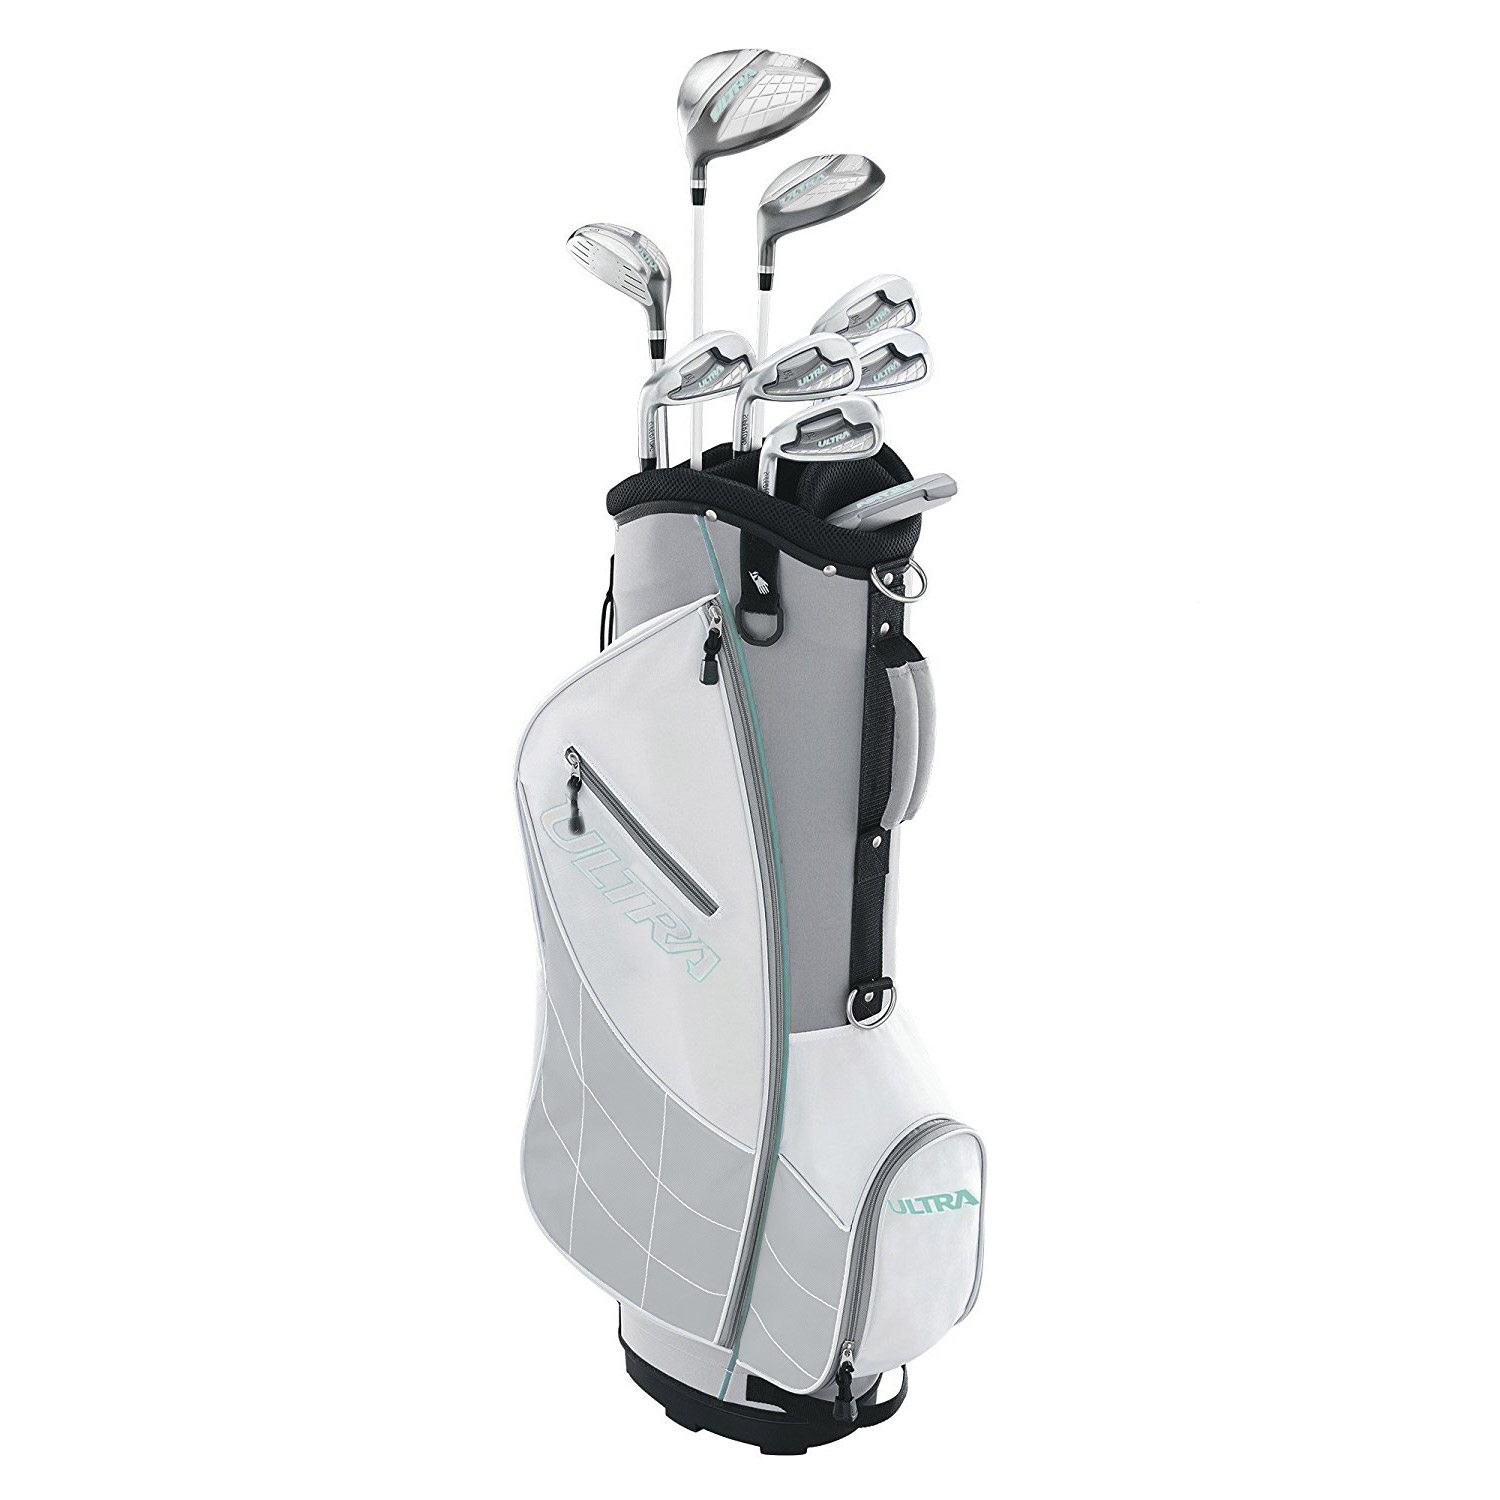 Wilson Ultra Womens Left Handed Complete Golf Club Set with Cart Bag, Gray Mint by Wilson